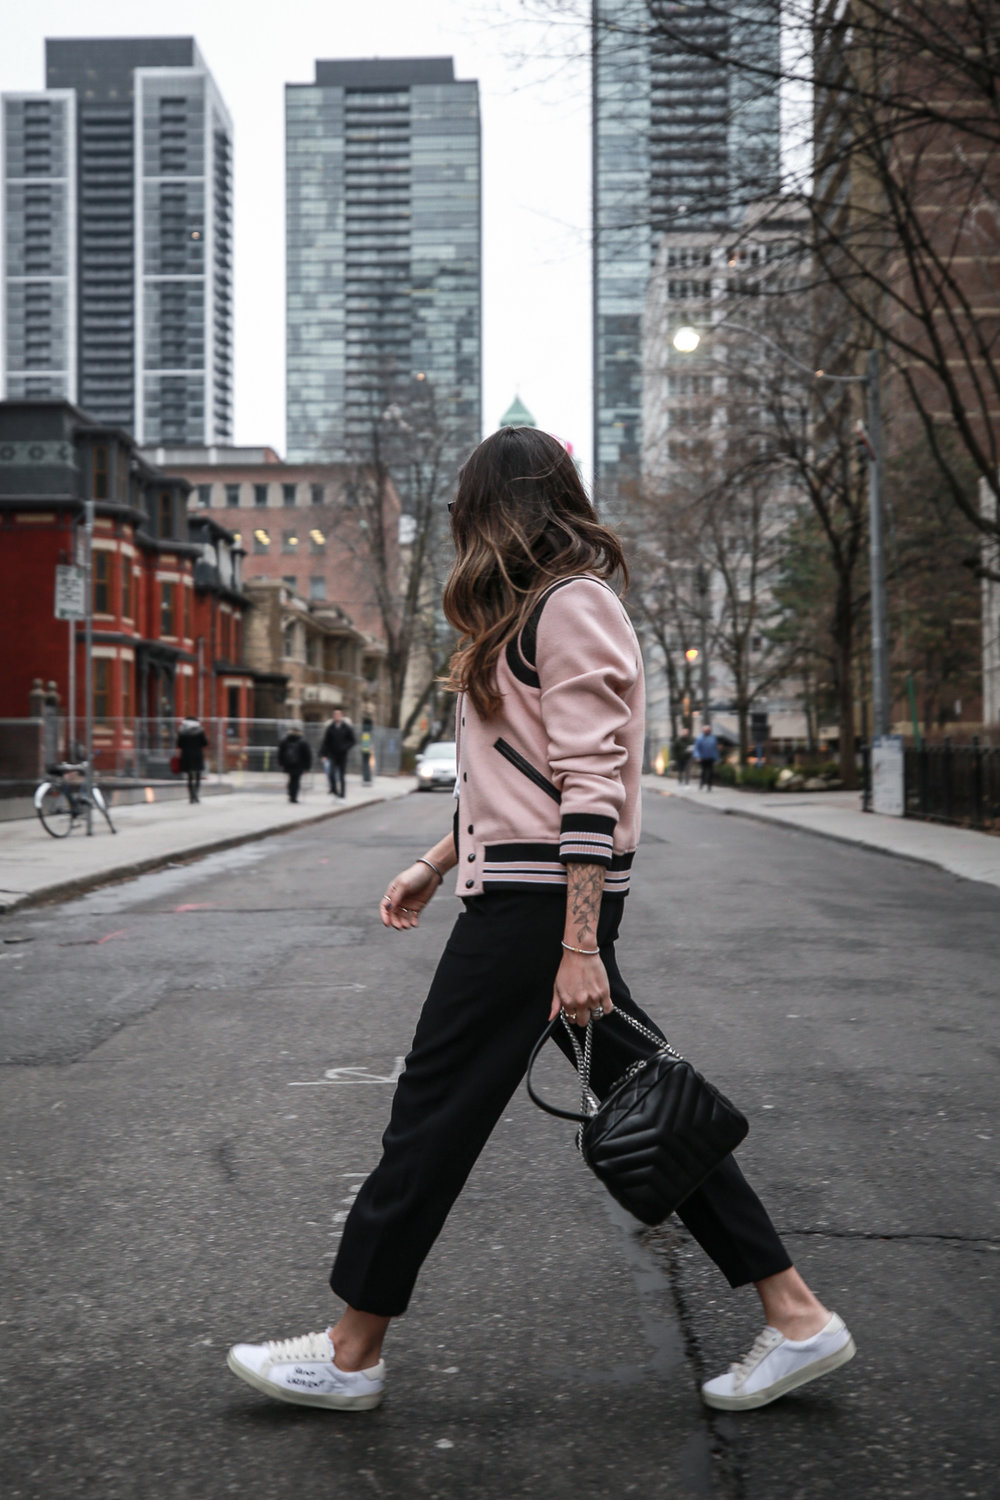 Nathalie Martin wearing Saint Laurent pink Teddy Jacket, YSL Lou Lou small bowling bag, white canvas sneakers, Aritzia Jallade Pant, street style, woahstyle.com_4055-2.jpg